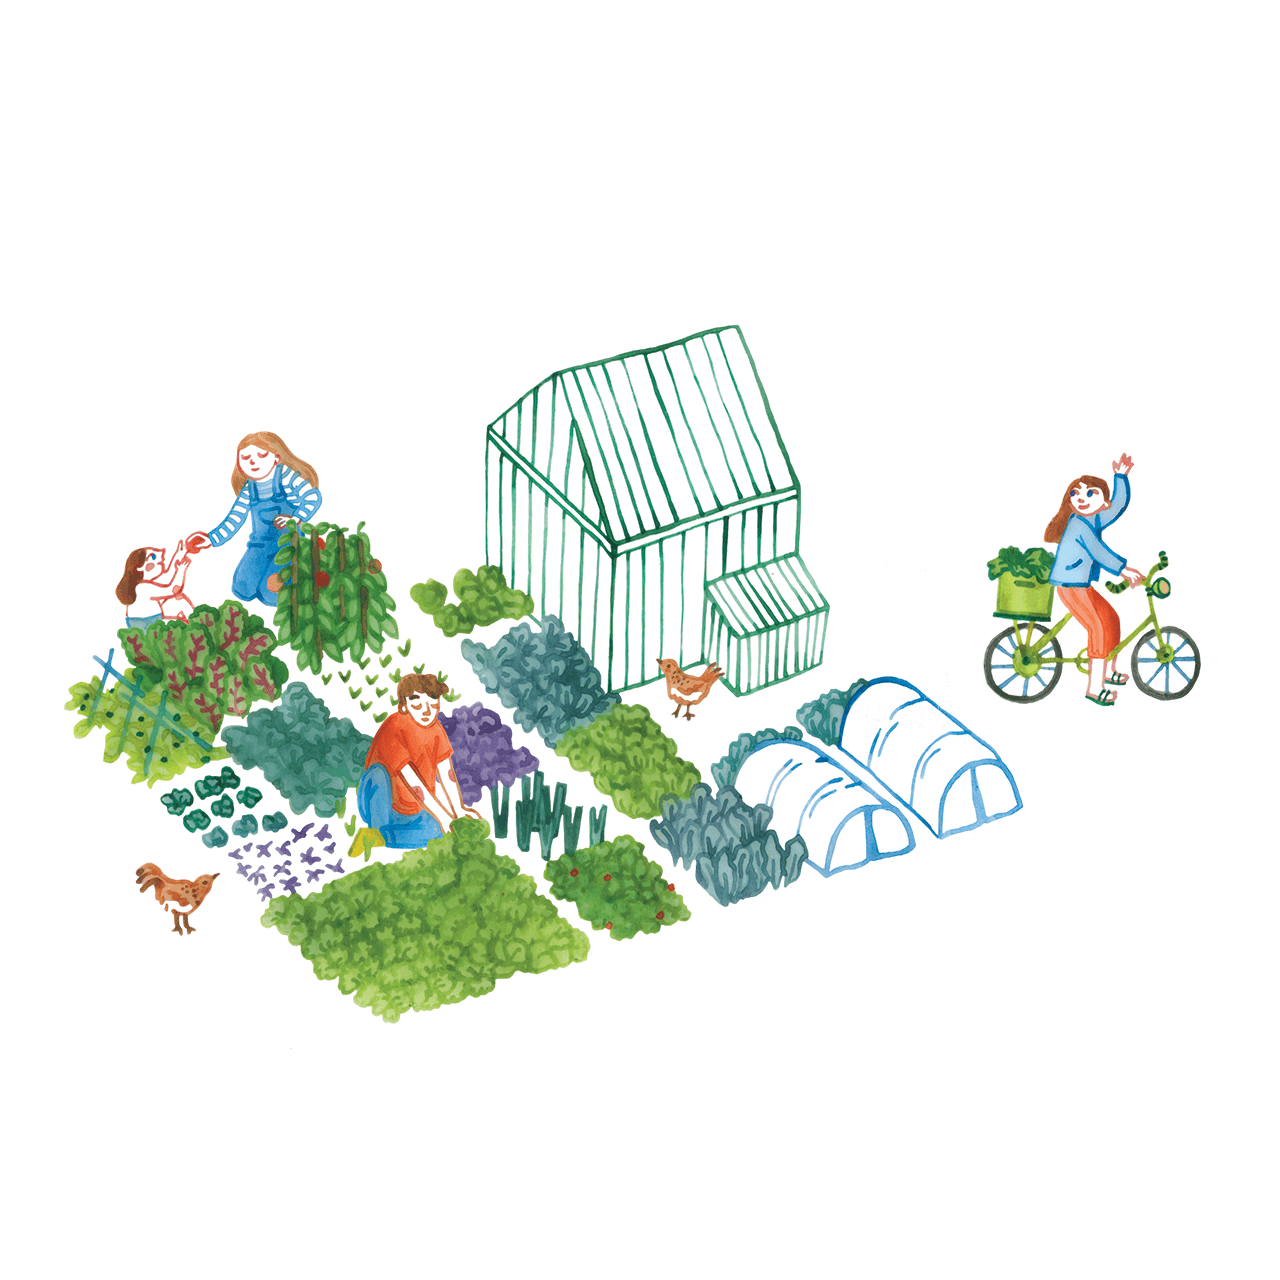 Editorial illustration of people gardening